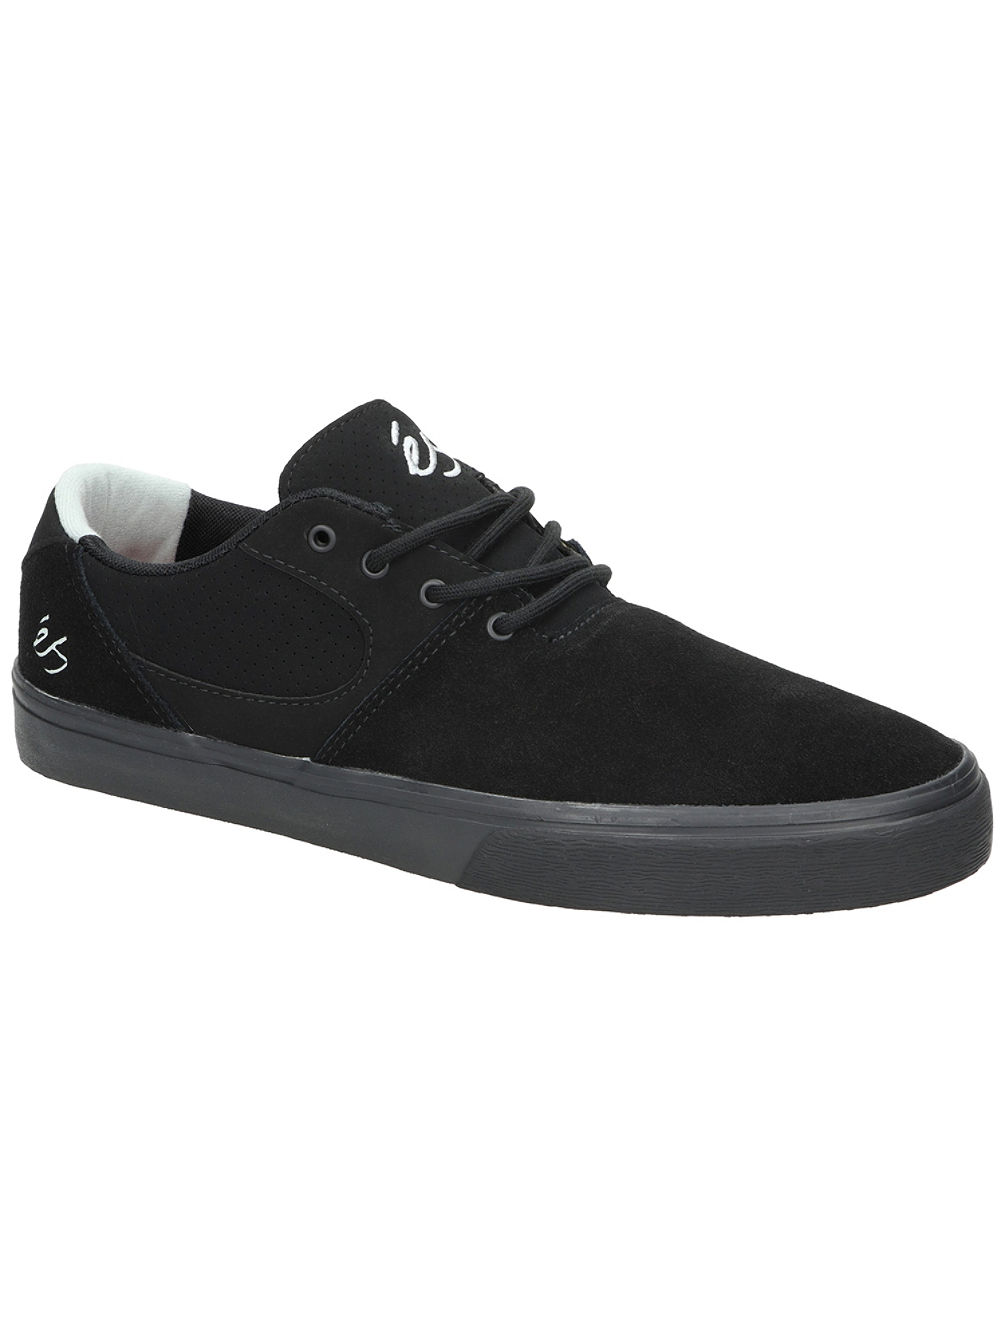 Accel SQ Skate Shoes